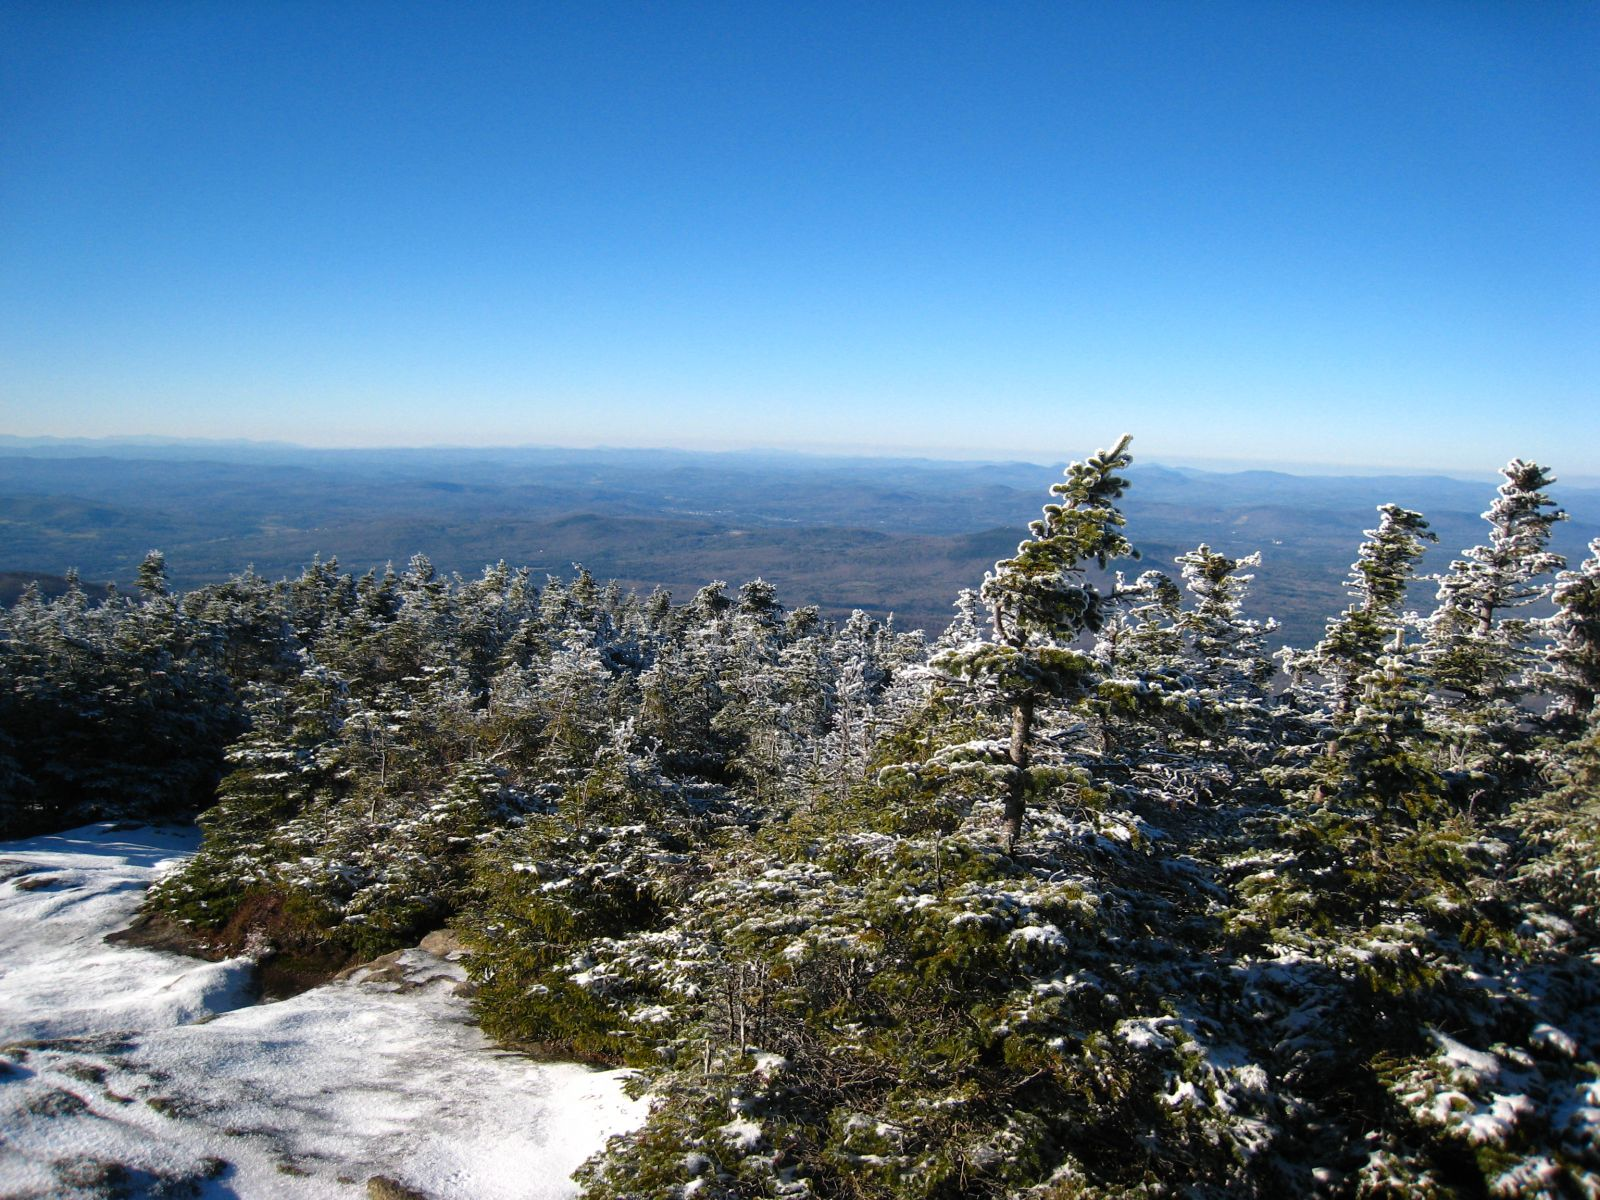 View from the Summit of Mt. Garfield